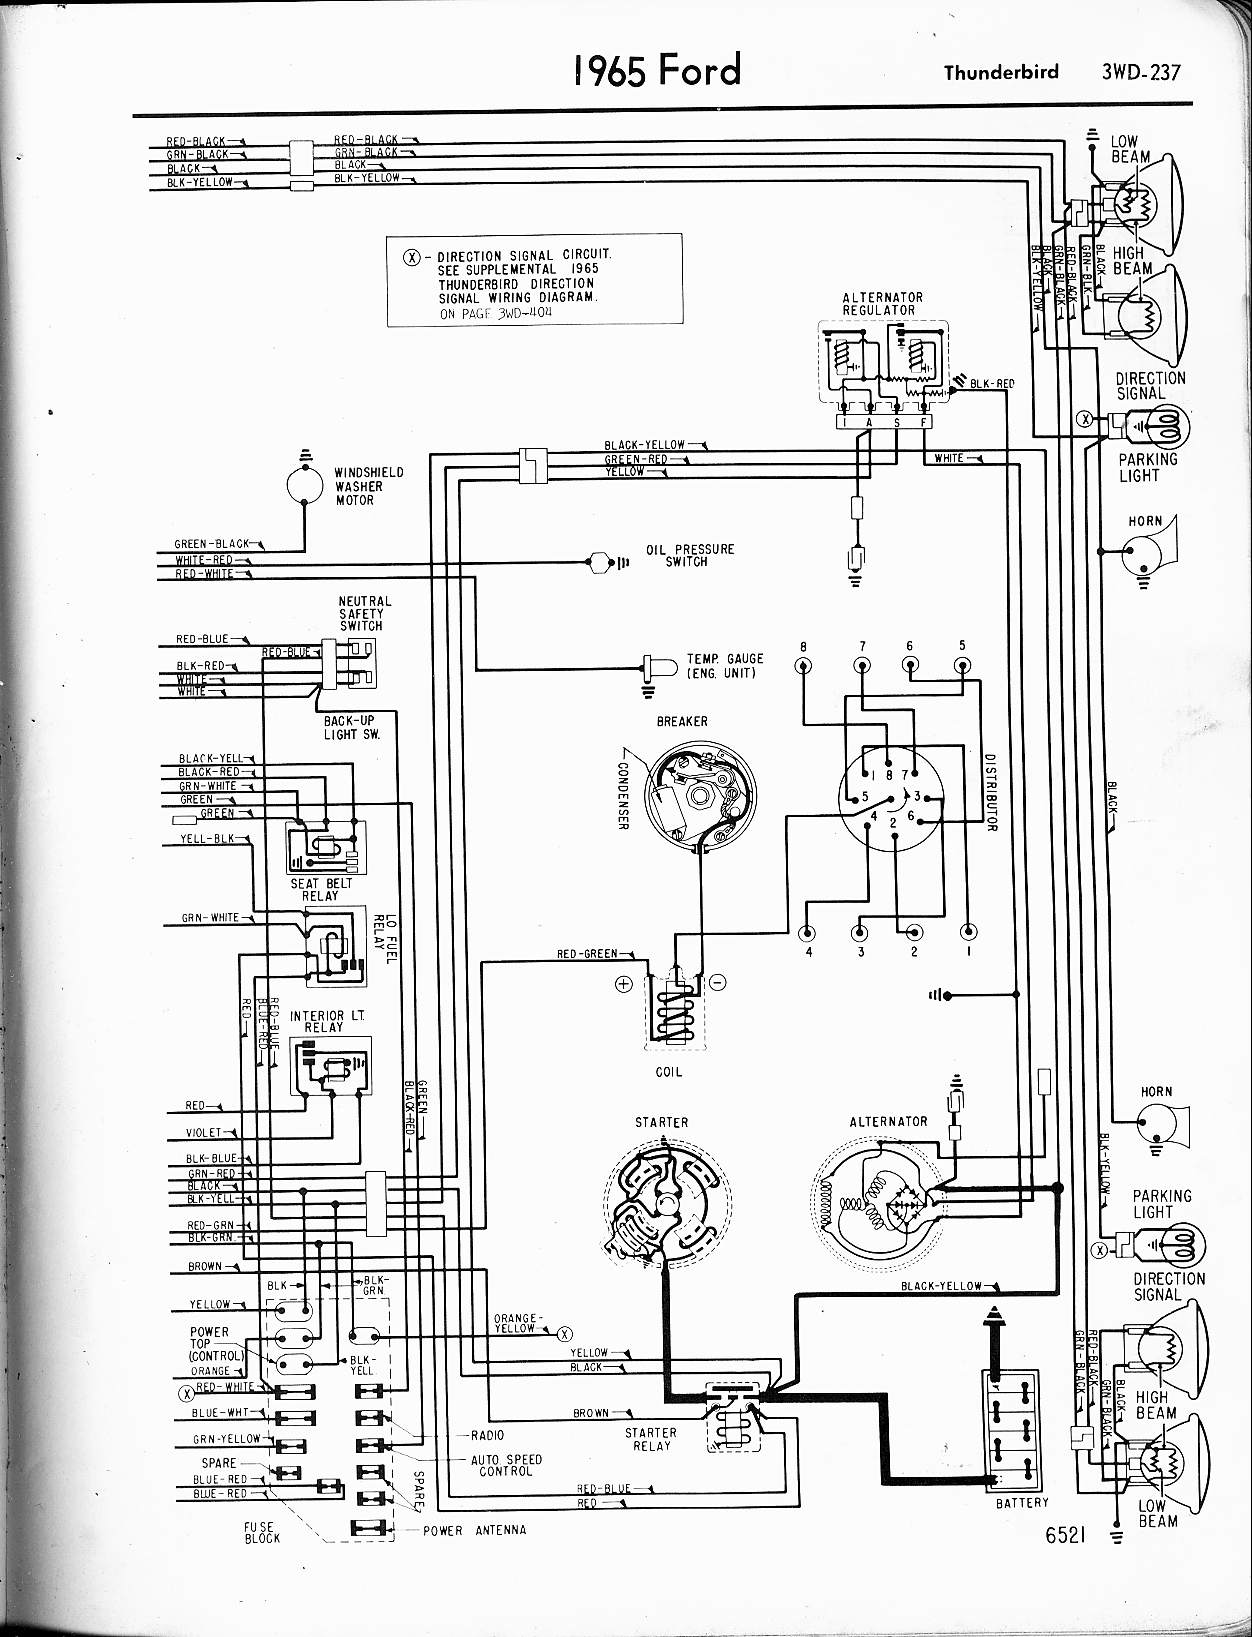 1970 Thunderbird Instrument Cluster Diagram Wiring Schematic Start Corvette 57 65 Ford Diagrams Rh Oldcarmanualproject Com Bronco